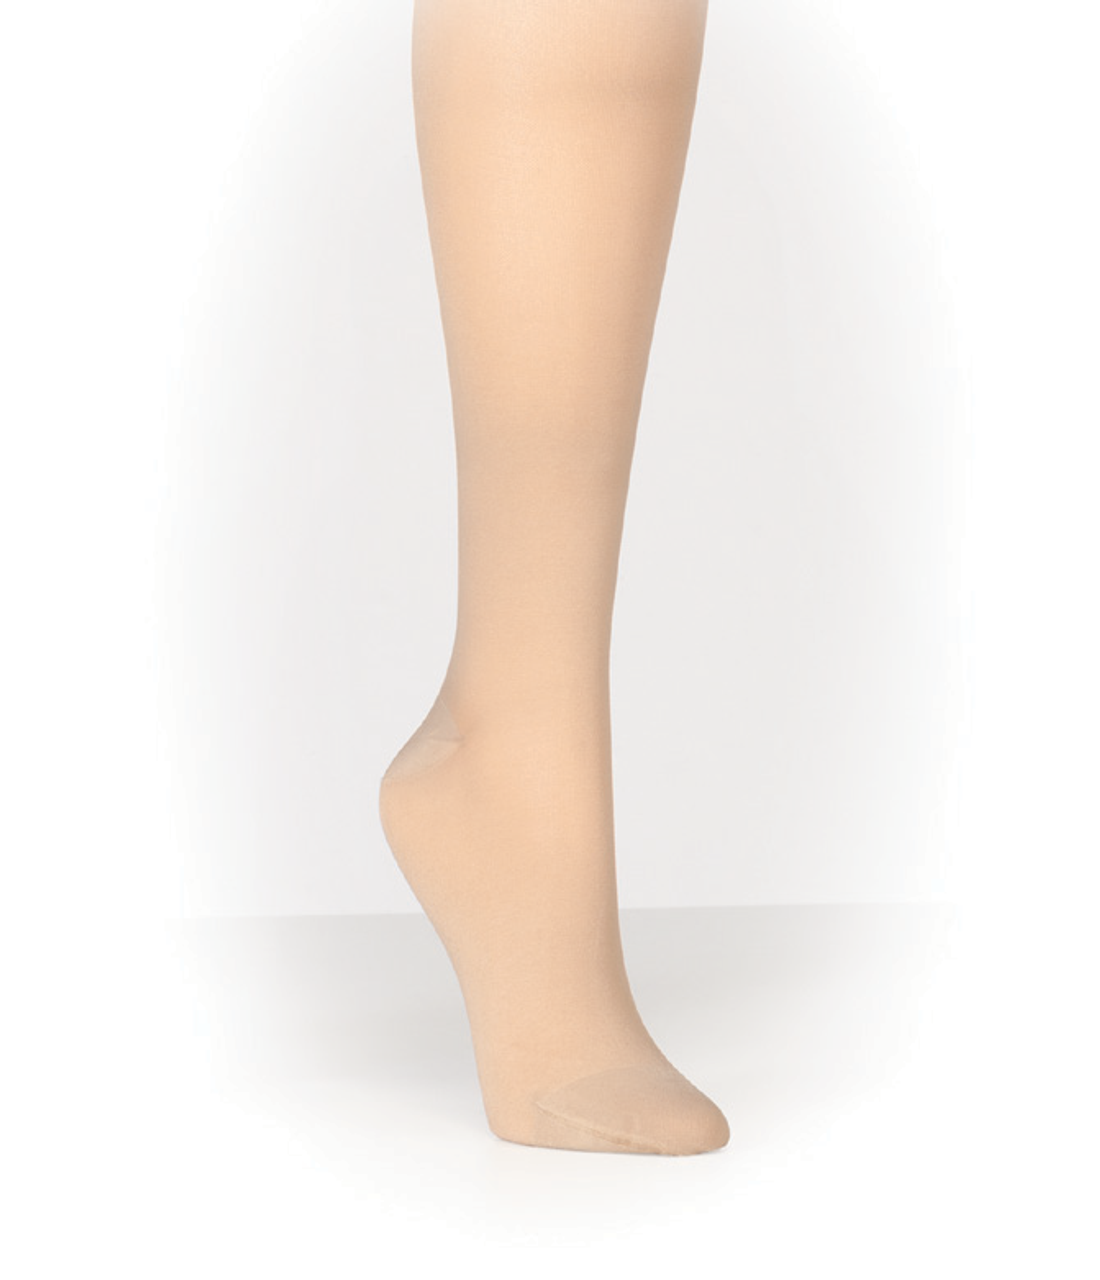 Phrase Yes, 100 sheer pantyhose have